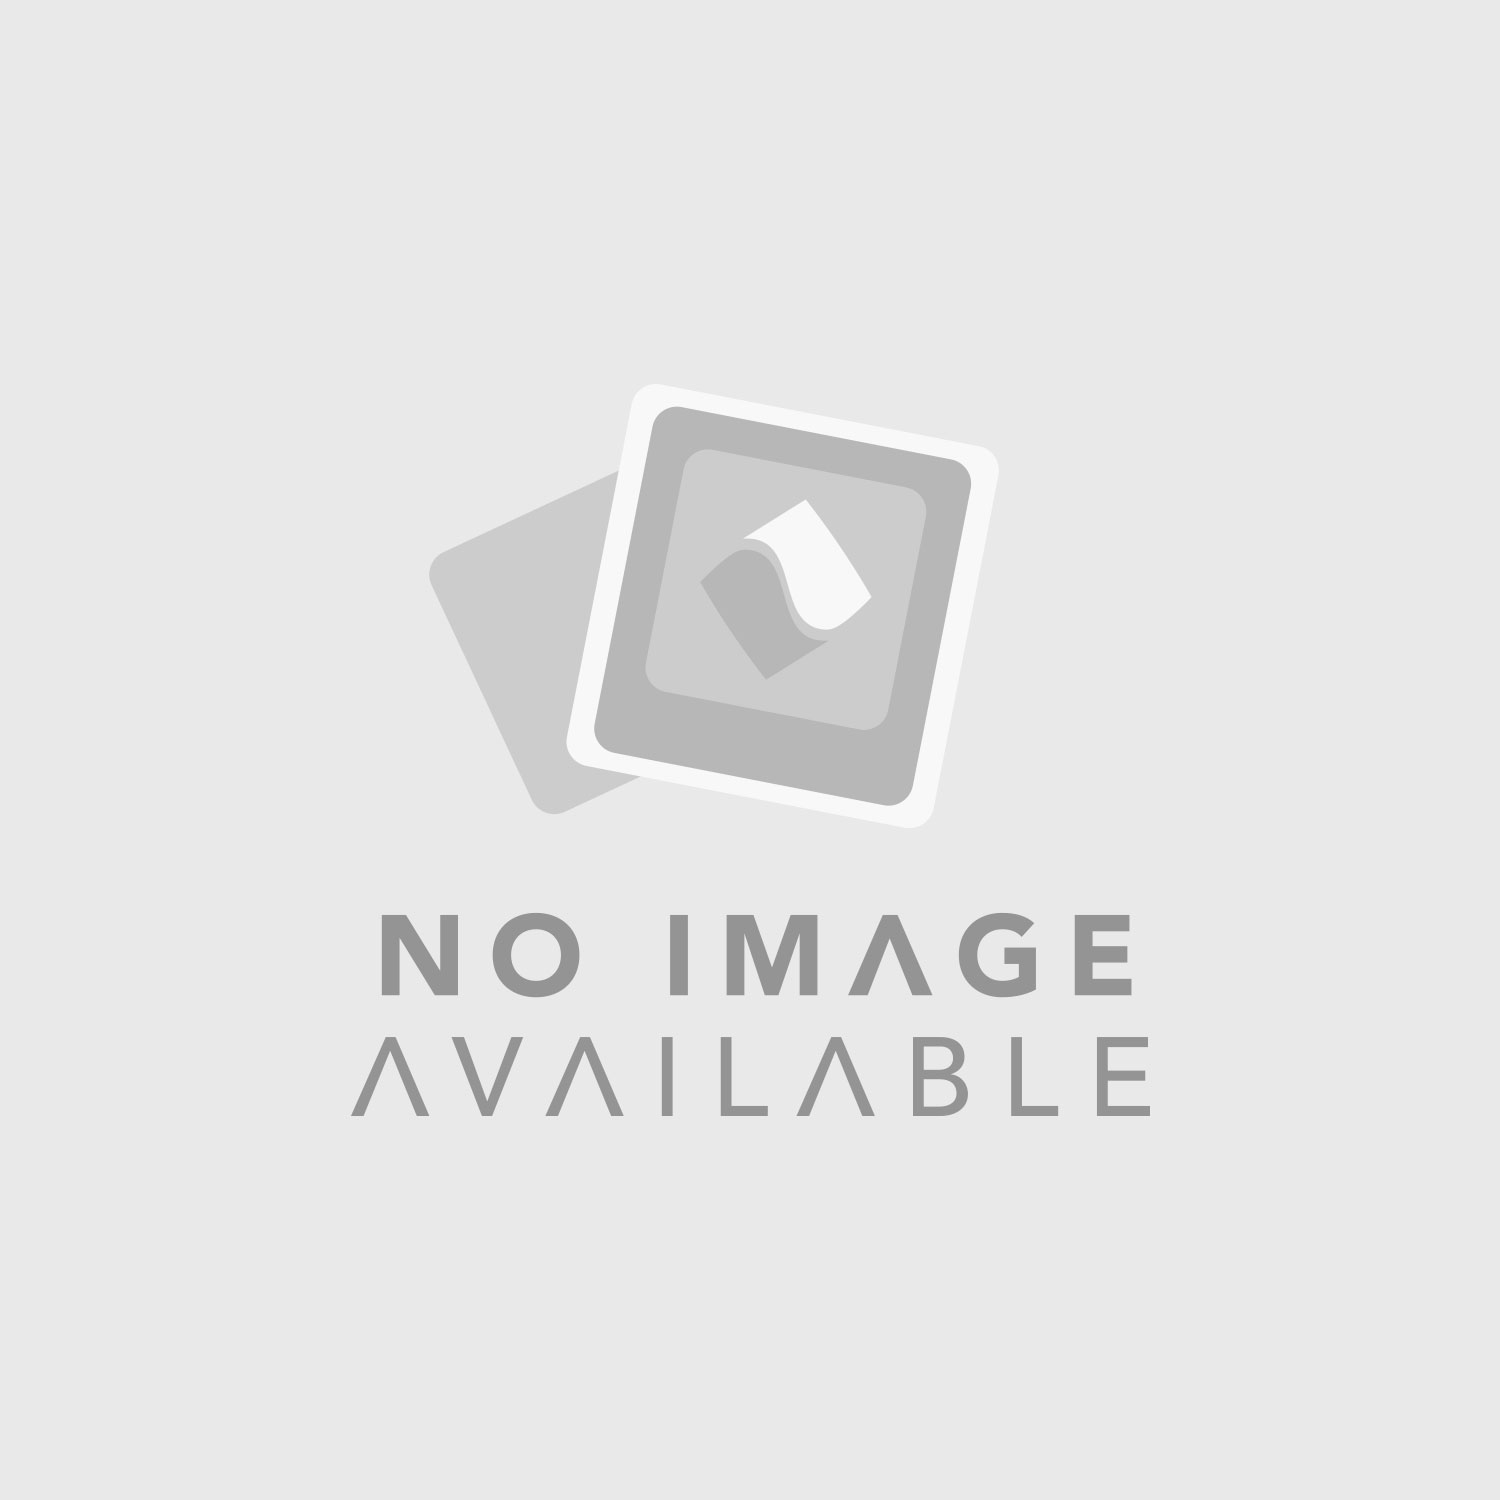 Yamaha HS7I 2-Way Bi-Amp Powered Studio Monitor (Single, White)